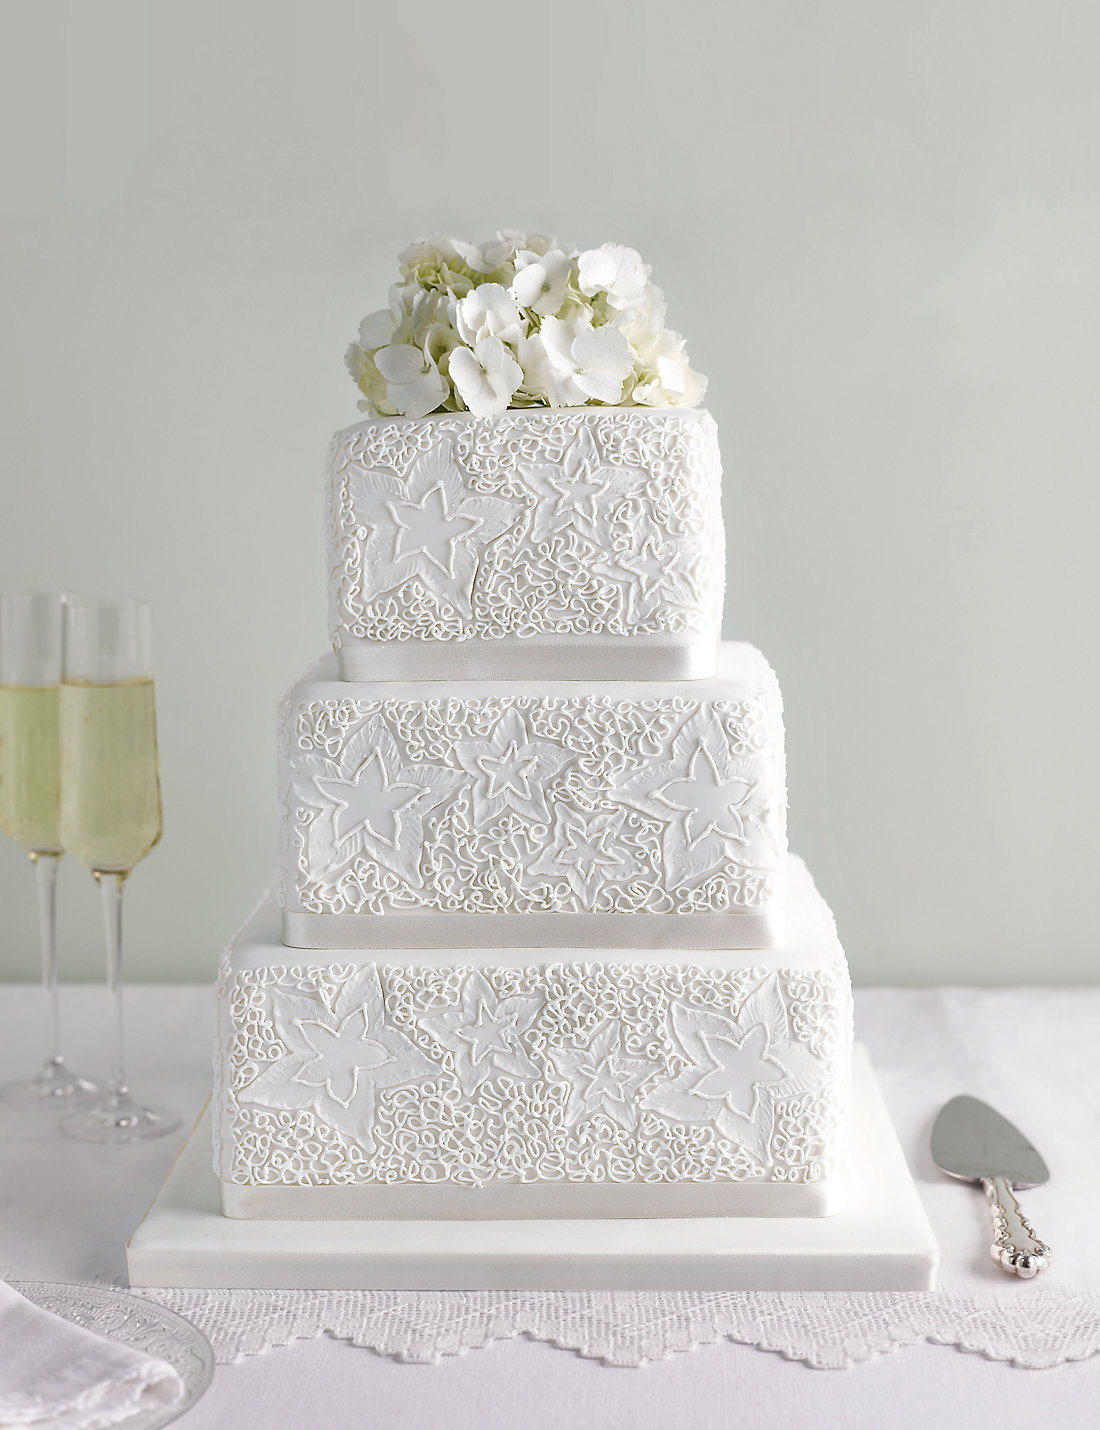 ready made wedding cakes - 5000+ Simple Wedding Cakes